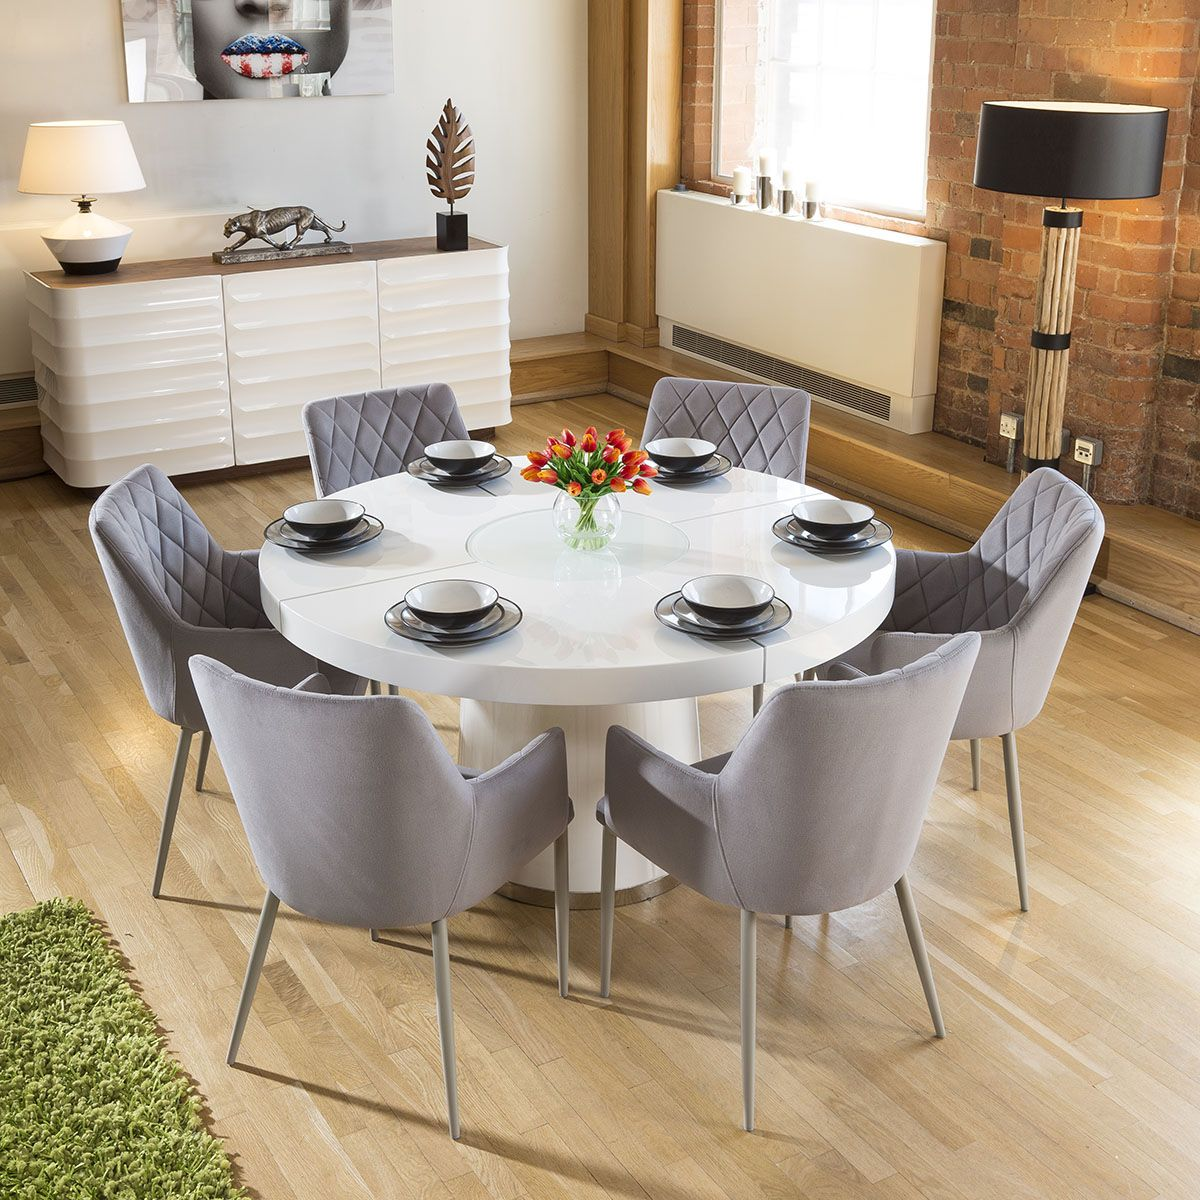 Large White Circular 1 4 Dining Table 6 Ice Grey Carver Chairs In